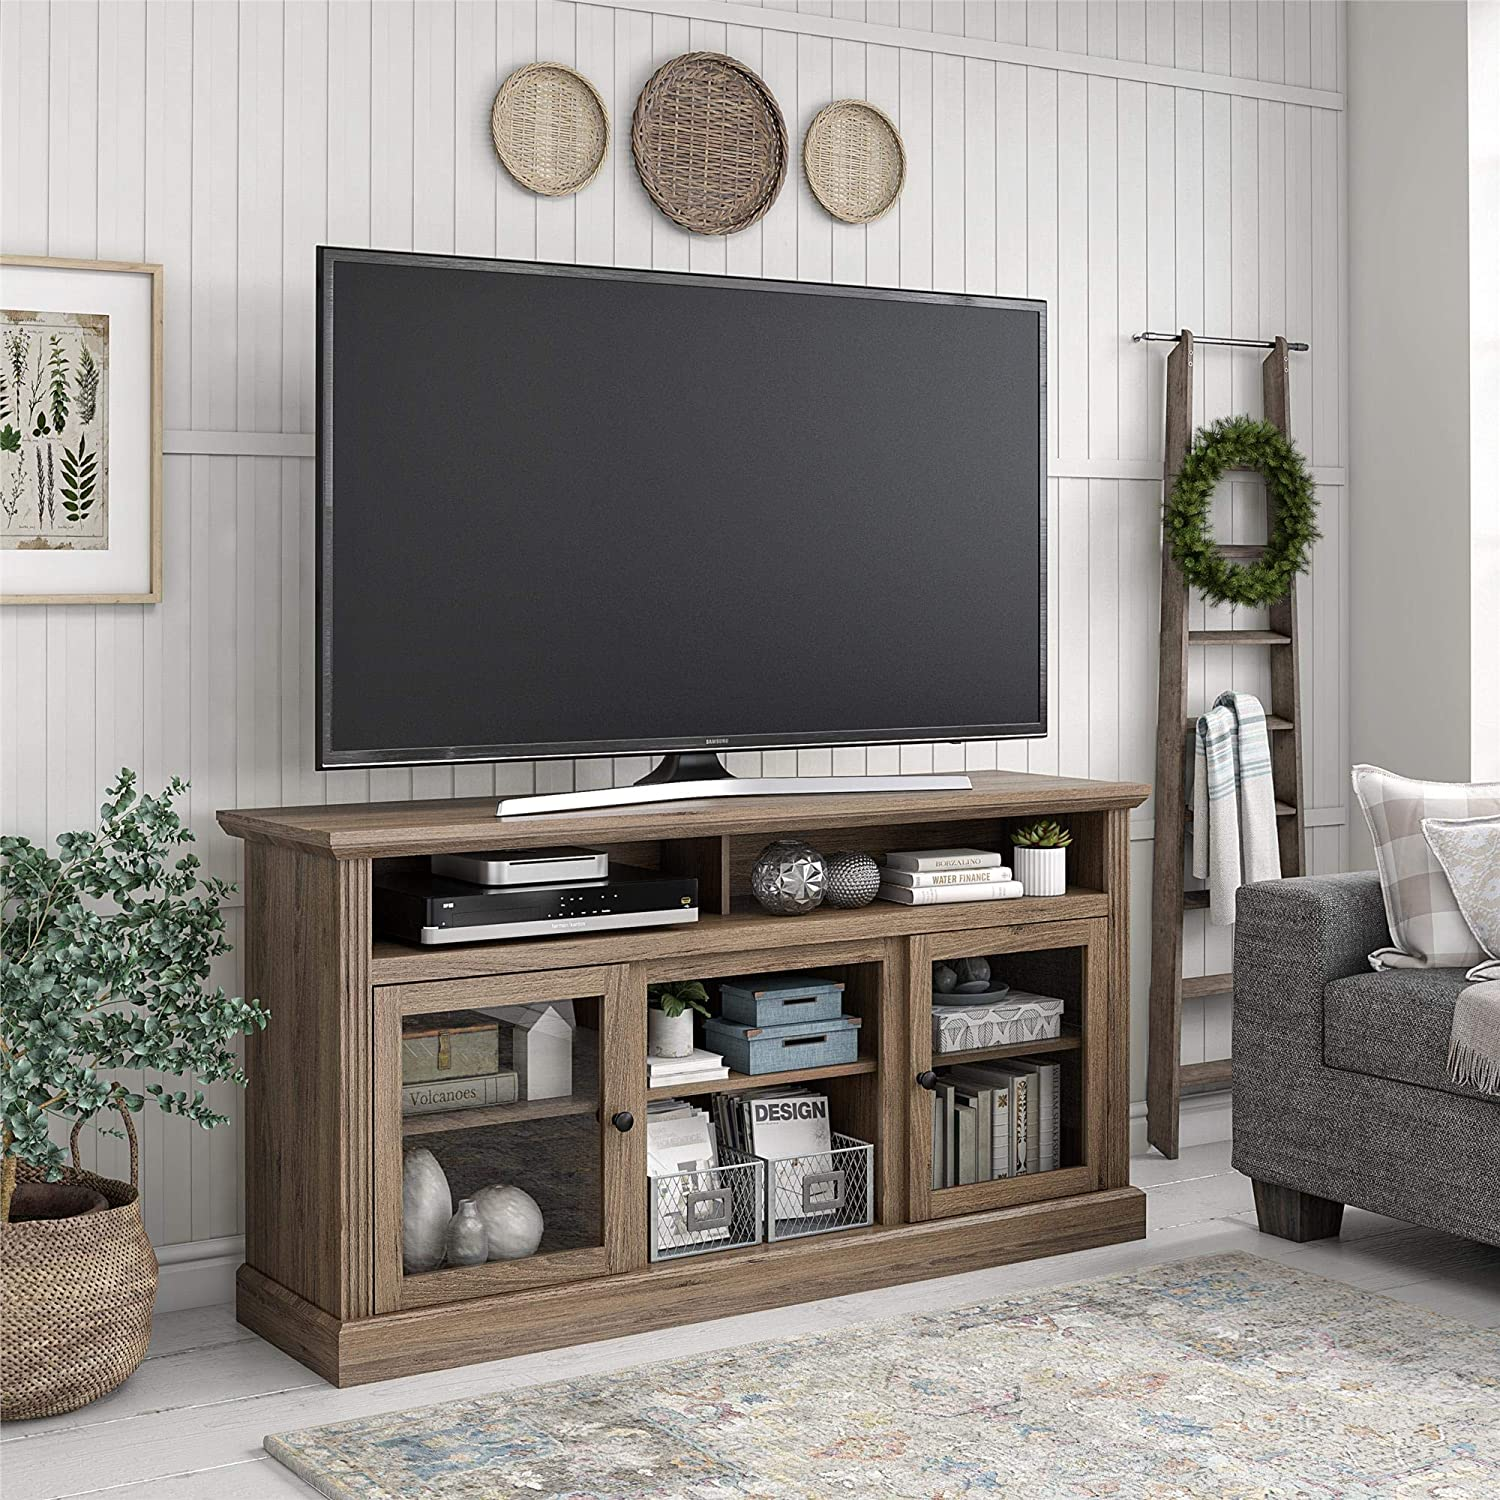 Ameriwood Home Chicago 65 , Rustic Oak TV Stand,